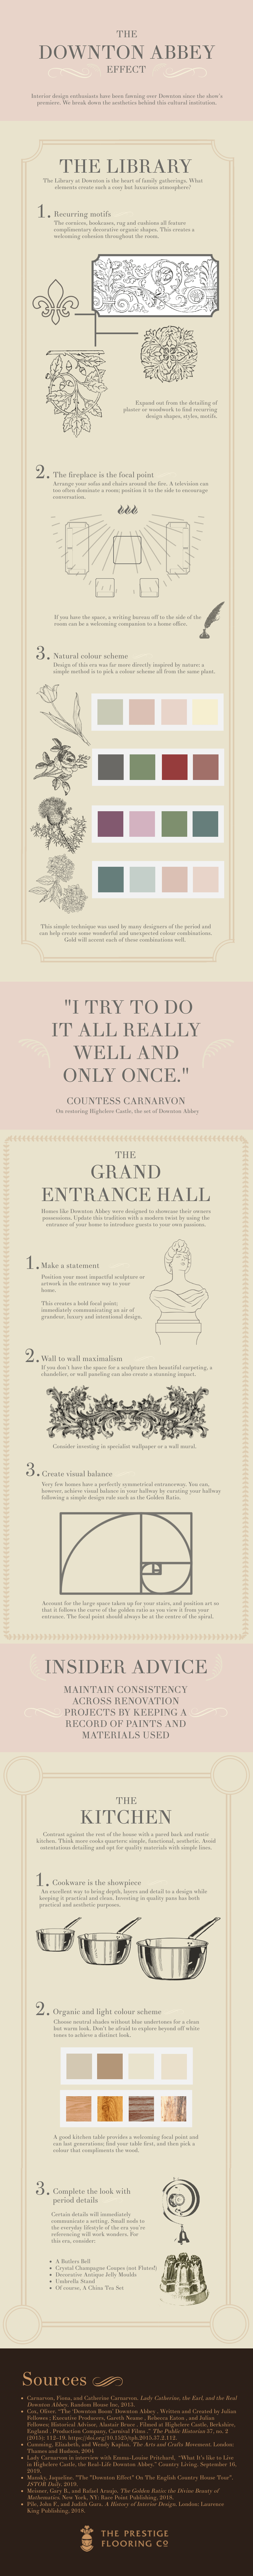 the downton abbey effect infographic prestige flooring